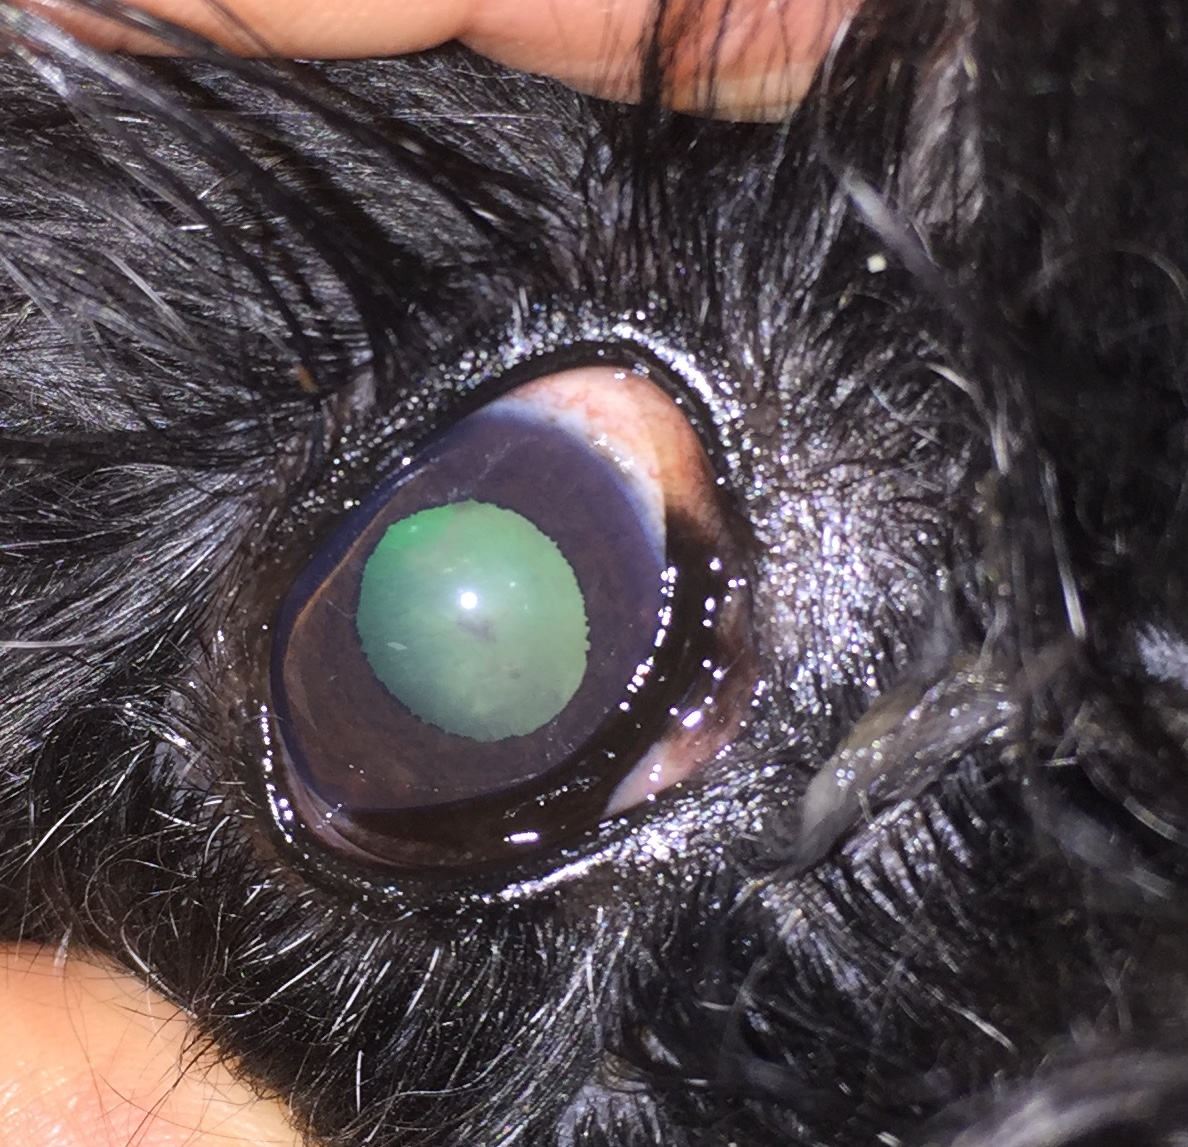 July 2018 -Acute severe uveitis with reappearance of the iris/lens abscess at 9 Oclock ( pink and swollen). Dog is almost blind.